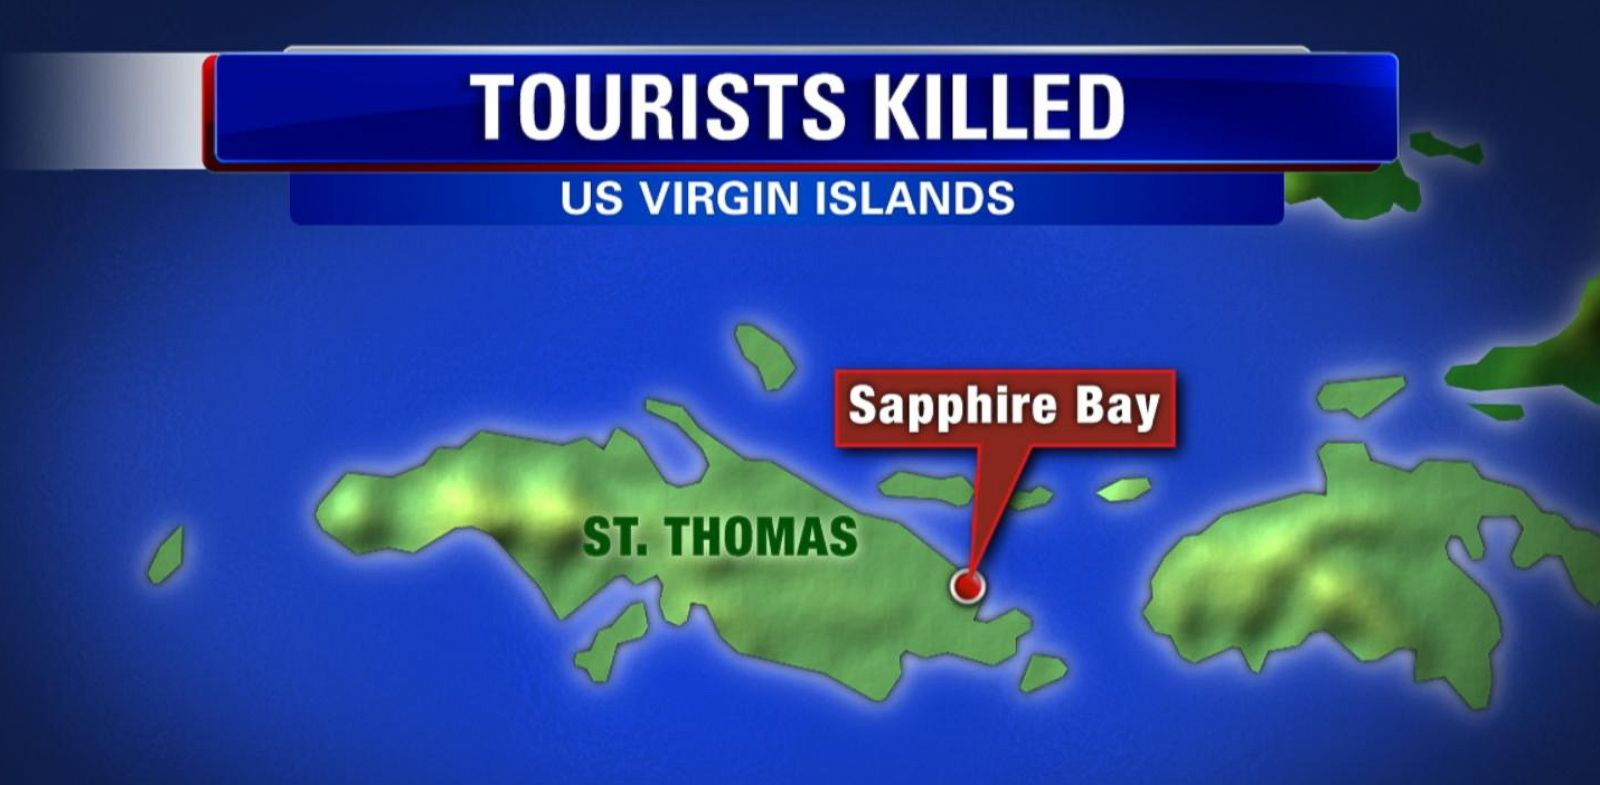 VIDEO: The bodies were discovered in the couple's rental home, located in the Sapphire Bay area of St. Thomas.